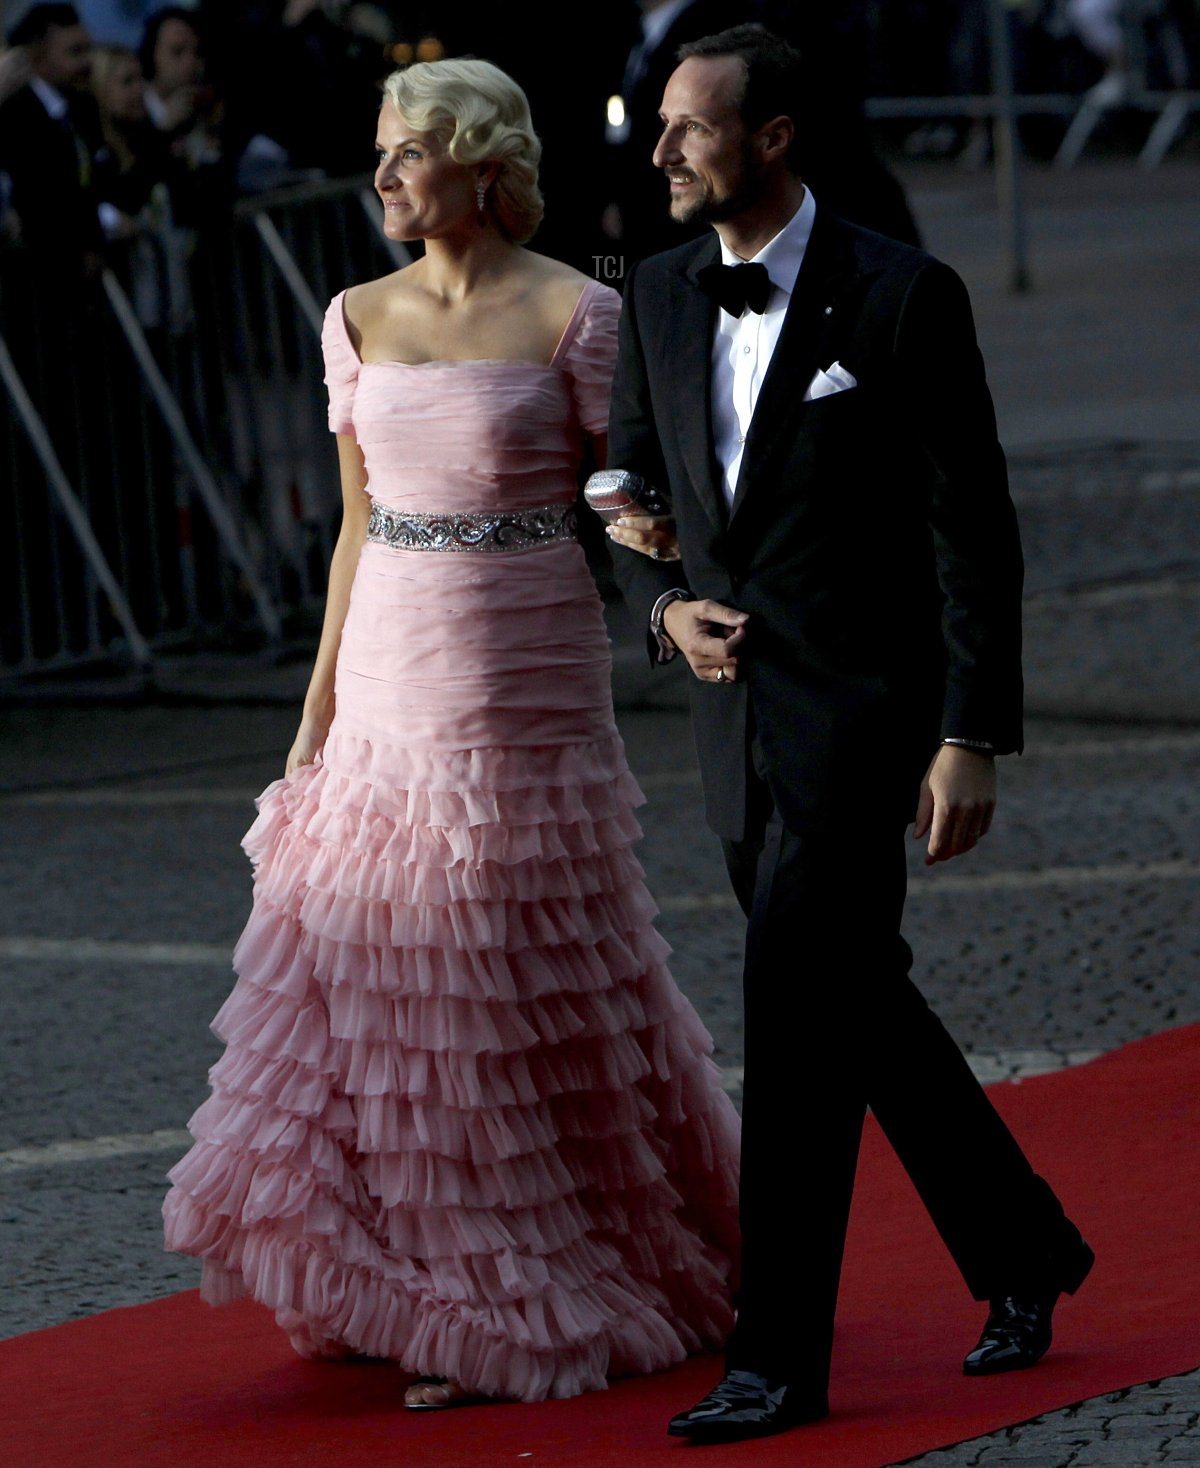 Norway's Crown prince Haakon Crown and Princess Mette-Marit arrive for a gala performance at the Stockholm Concert Hall in Stockholm on June 18, 2010